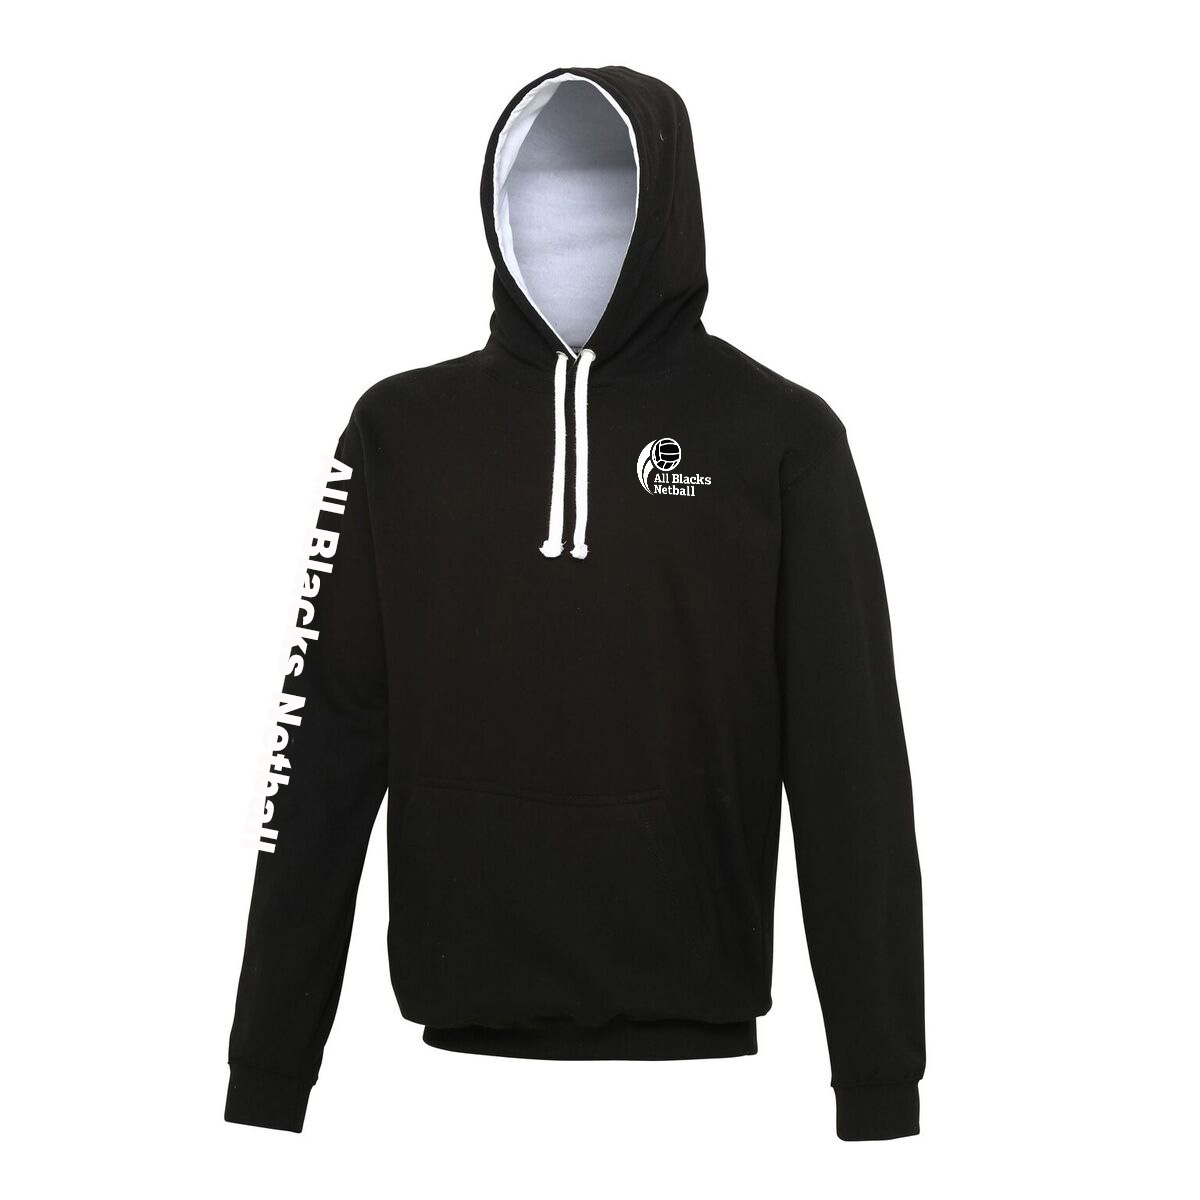 All Blacks Hoodie